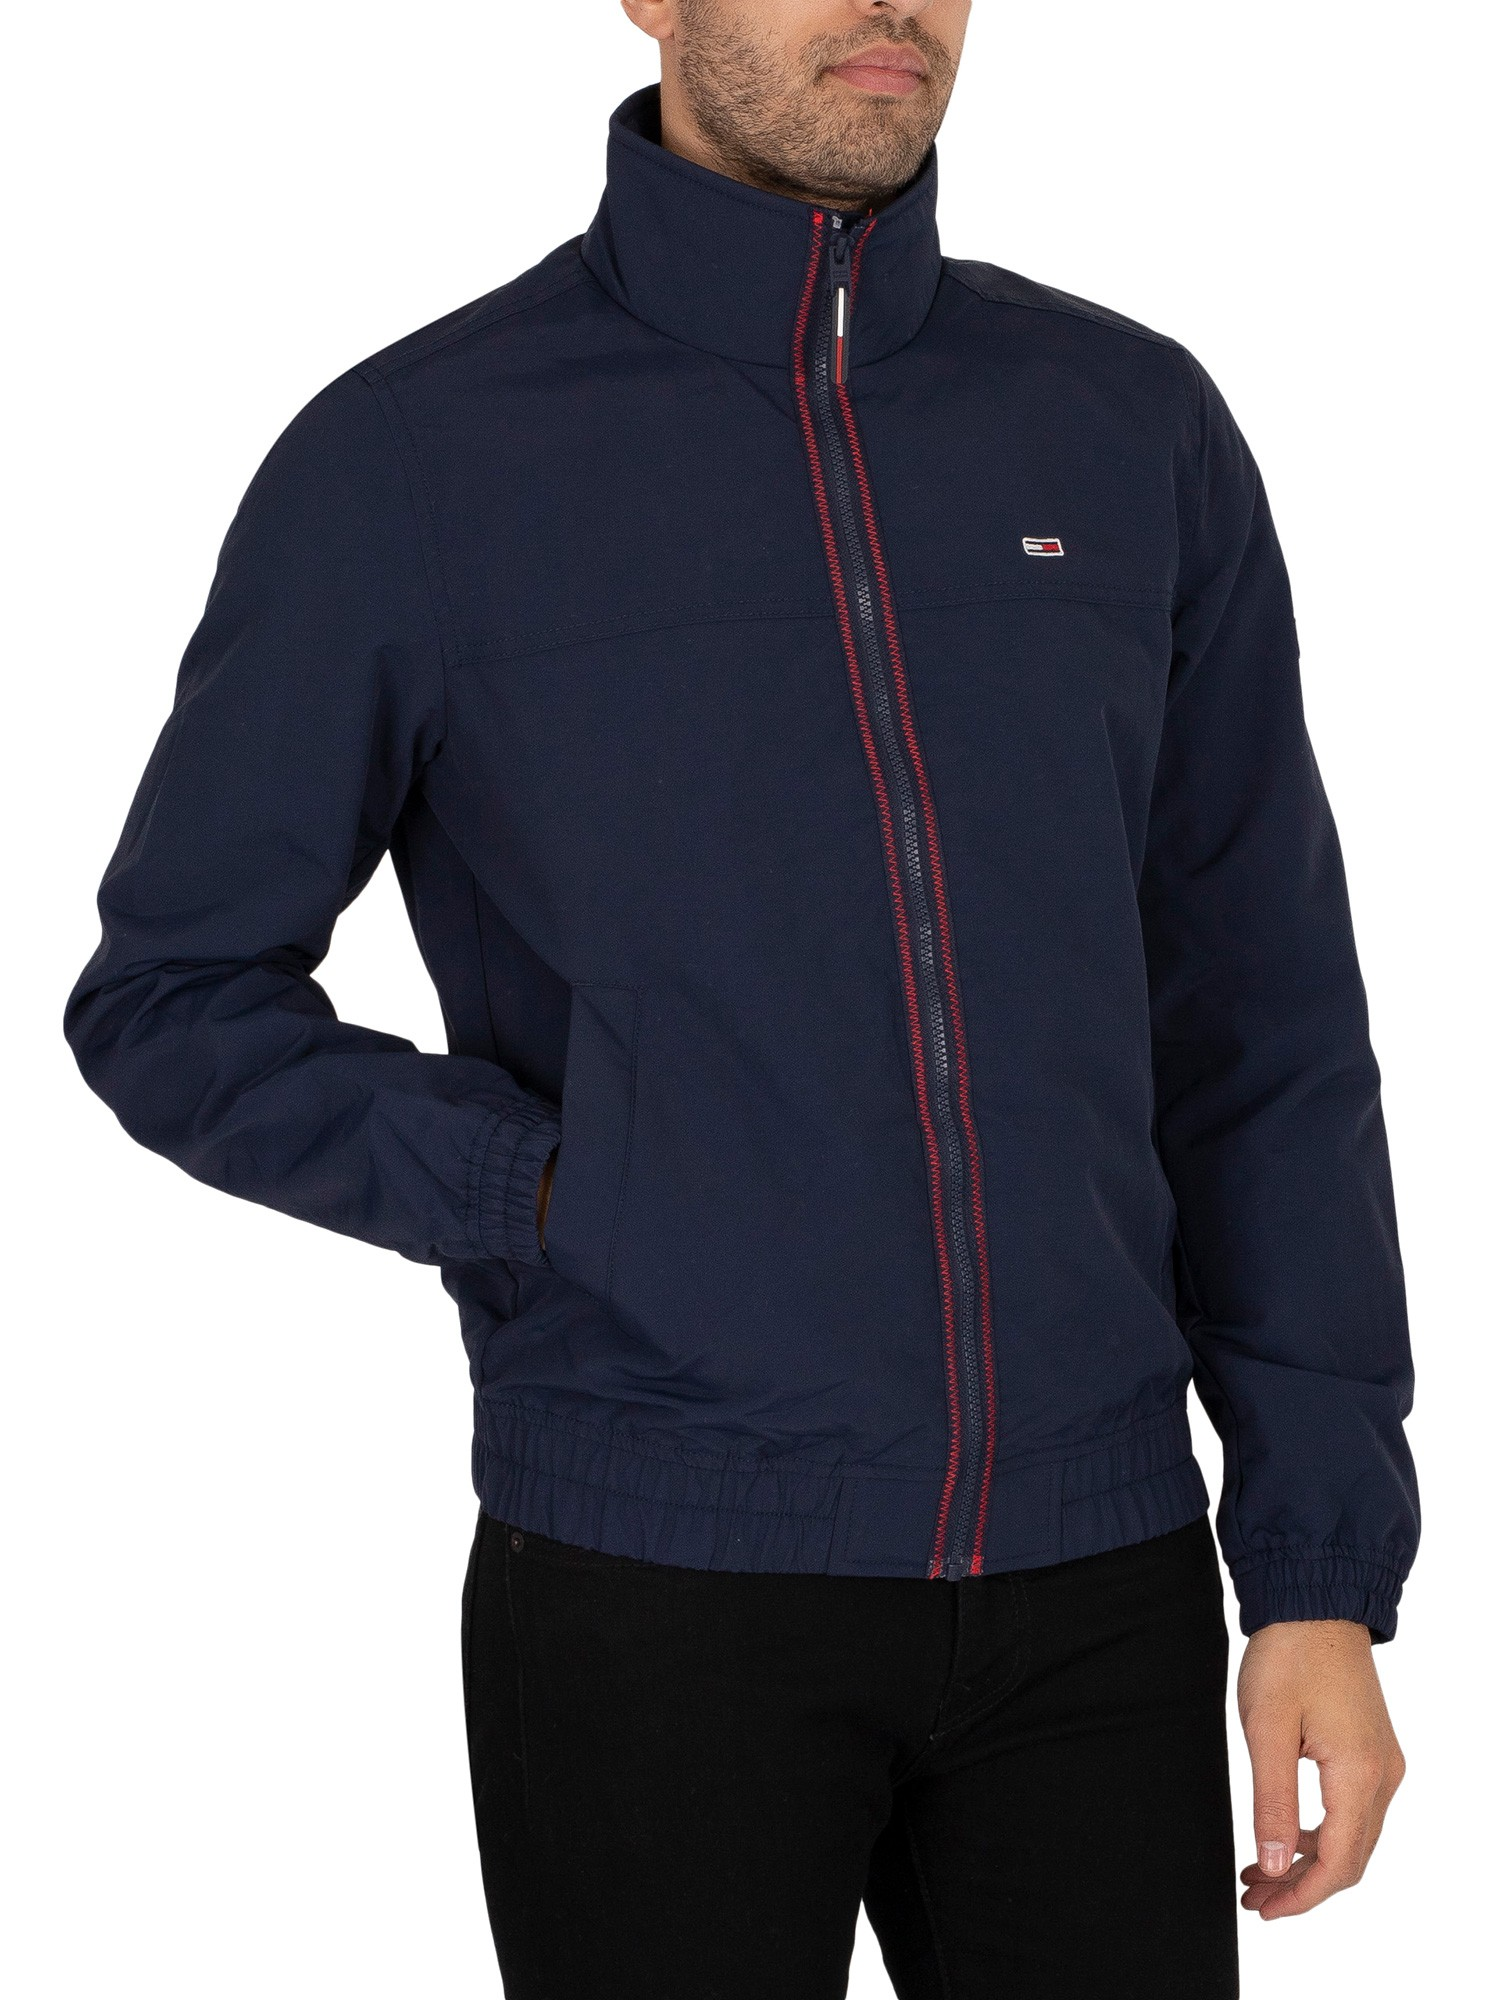 Essential Casual Light Jacket